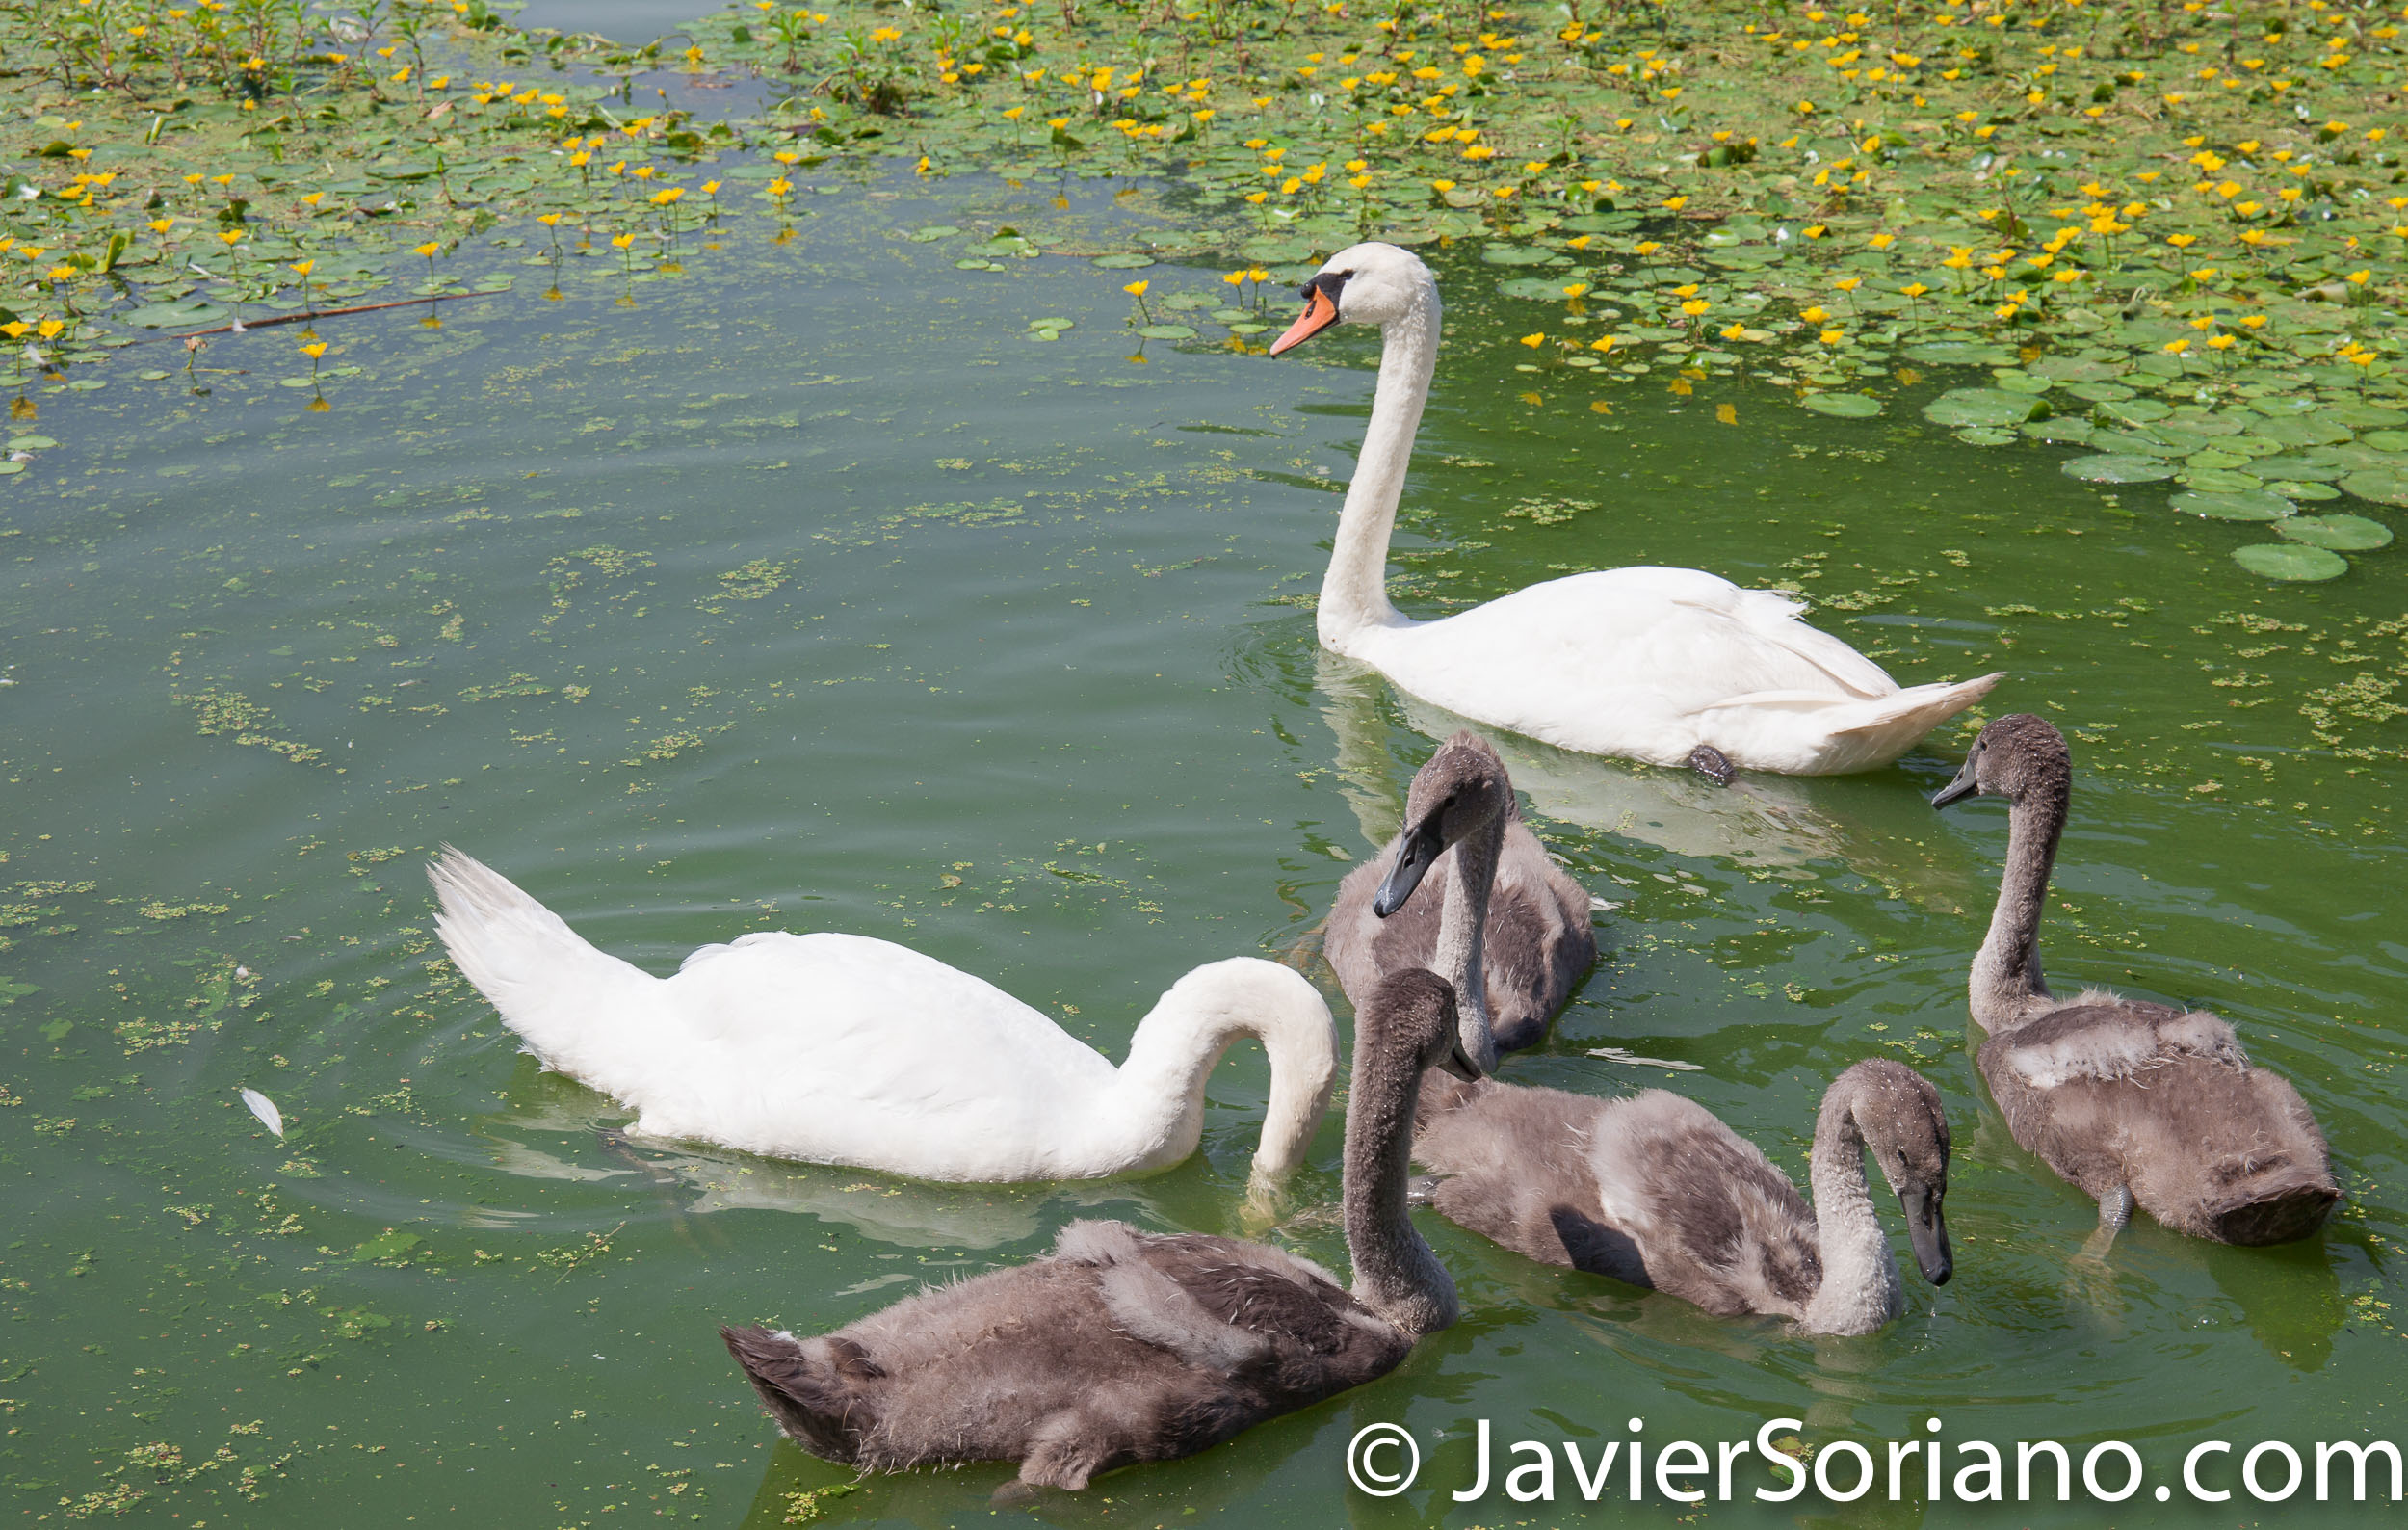 7/20/2017. Brooklyn, New York City. Swans with their babies in Prospect Park. It's a beautiful Summer day. Photo by Javier Soriano/www.JavierSoriano.com